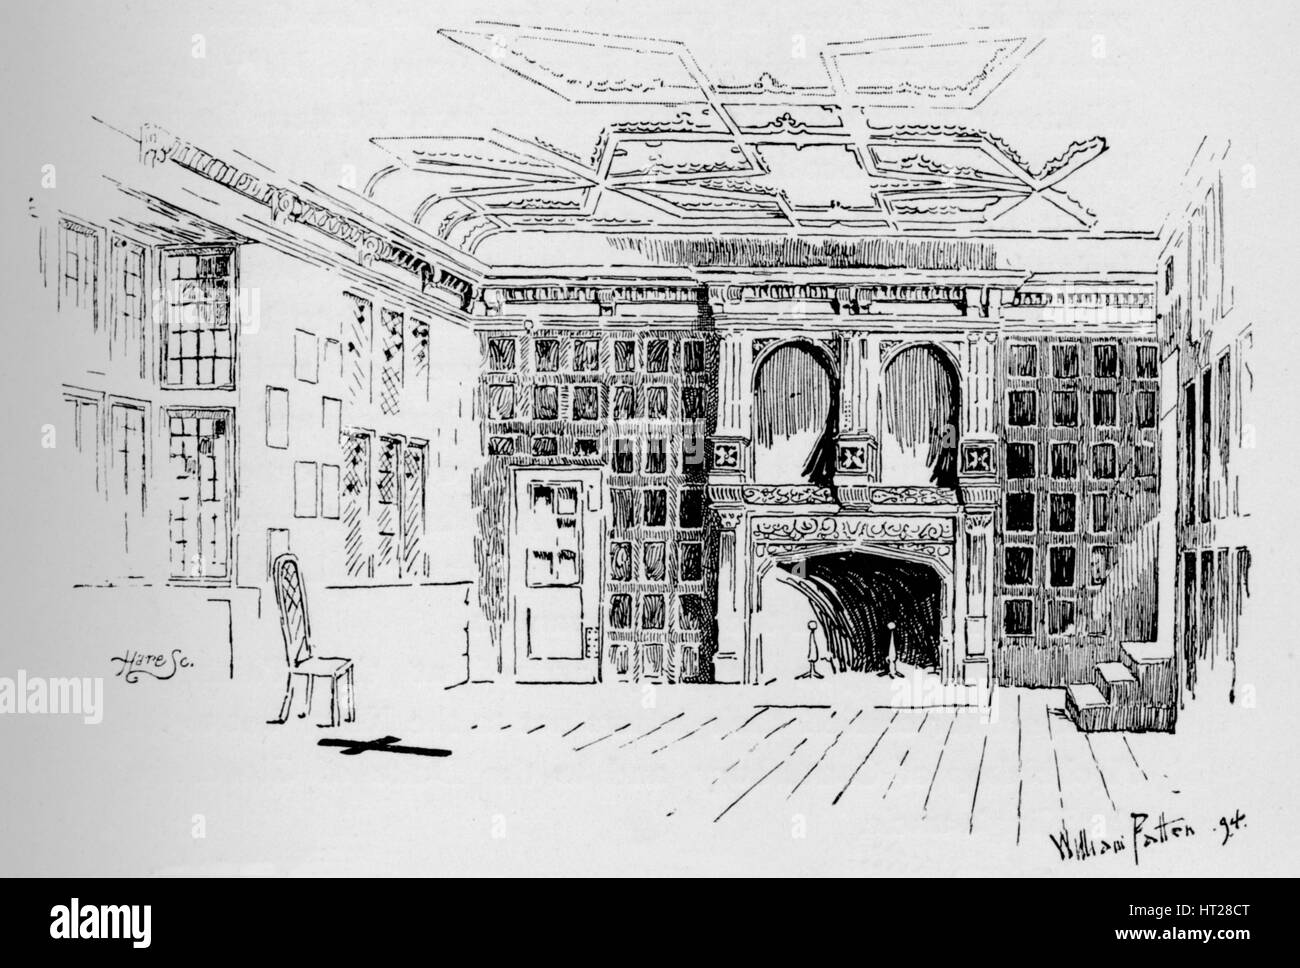 'The Star Chamber. Demolished in 1834', c1897. Artist: William Patten. - Stock Image